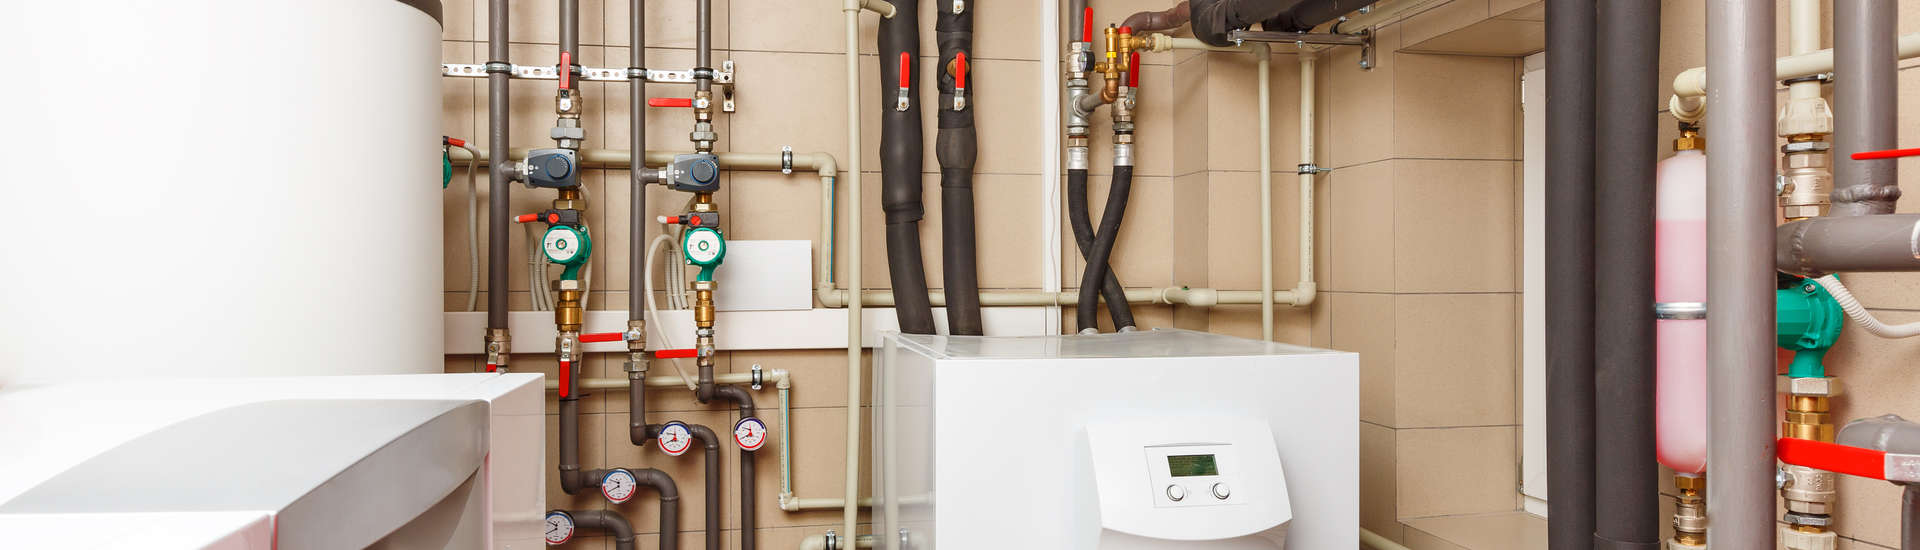 Heating Contractor Heyworth IL